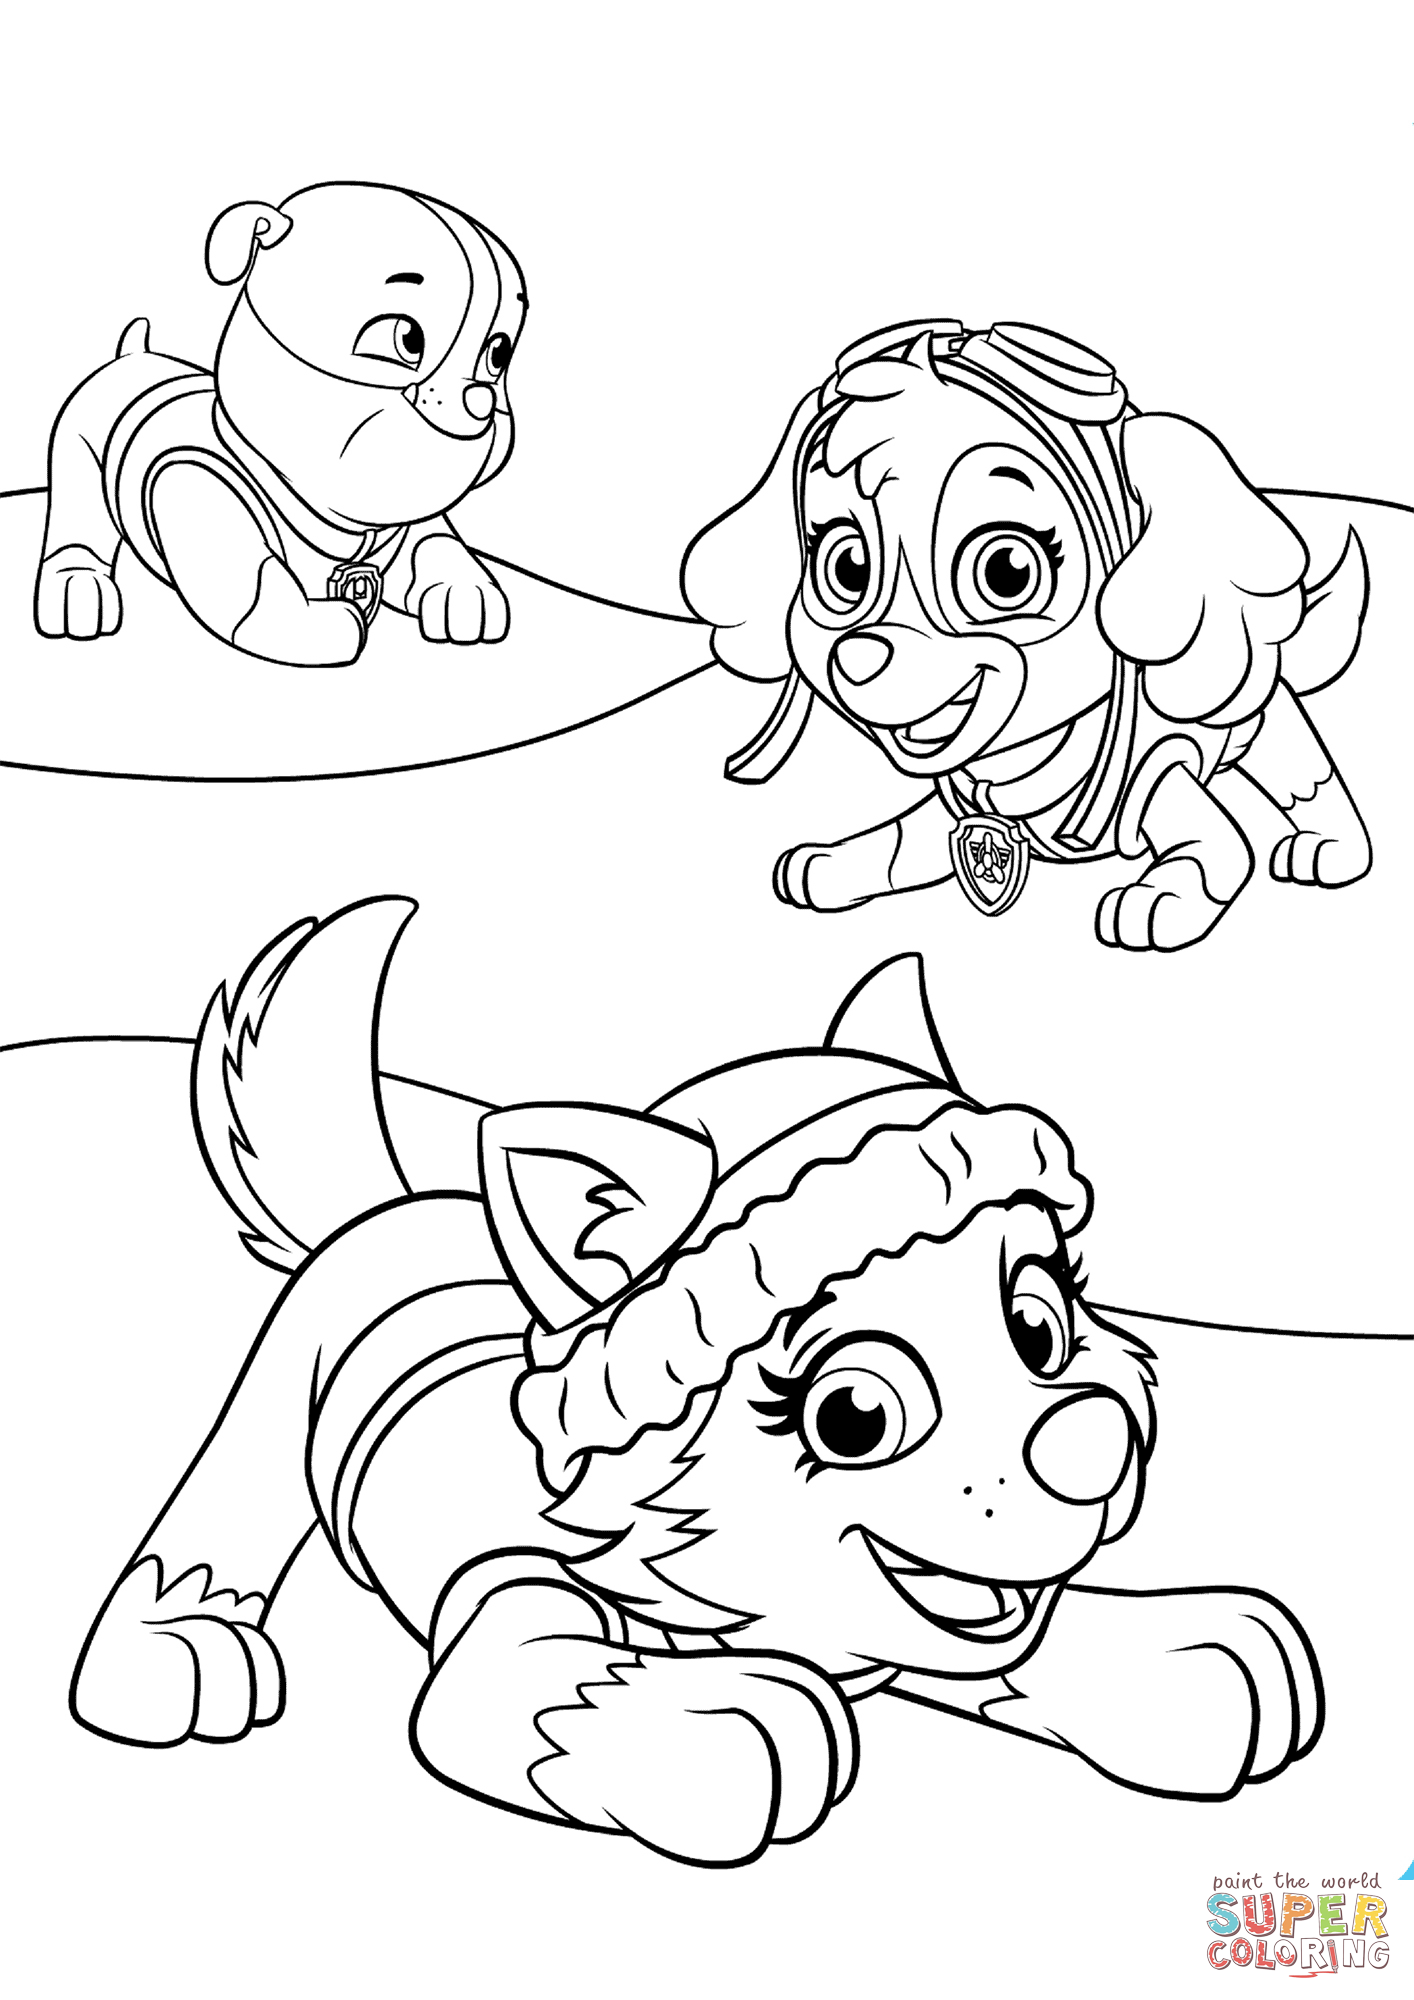 everest paw patrol coloring pin on coloring pages patrol coloring everest paw